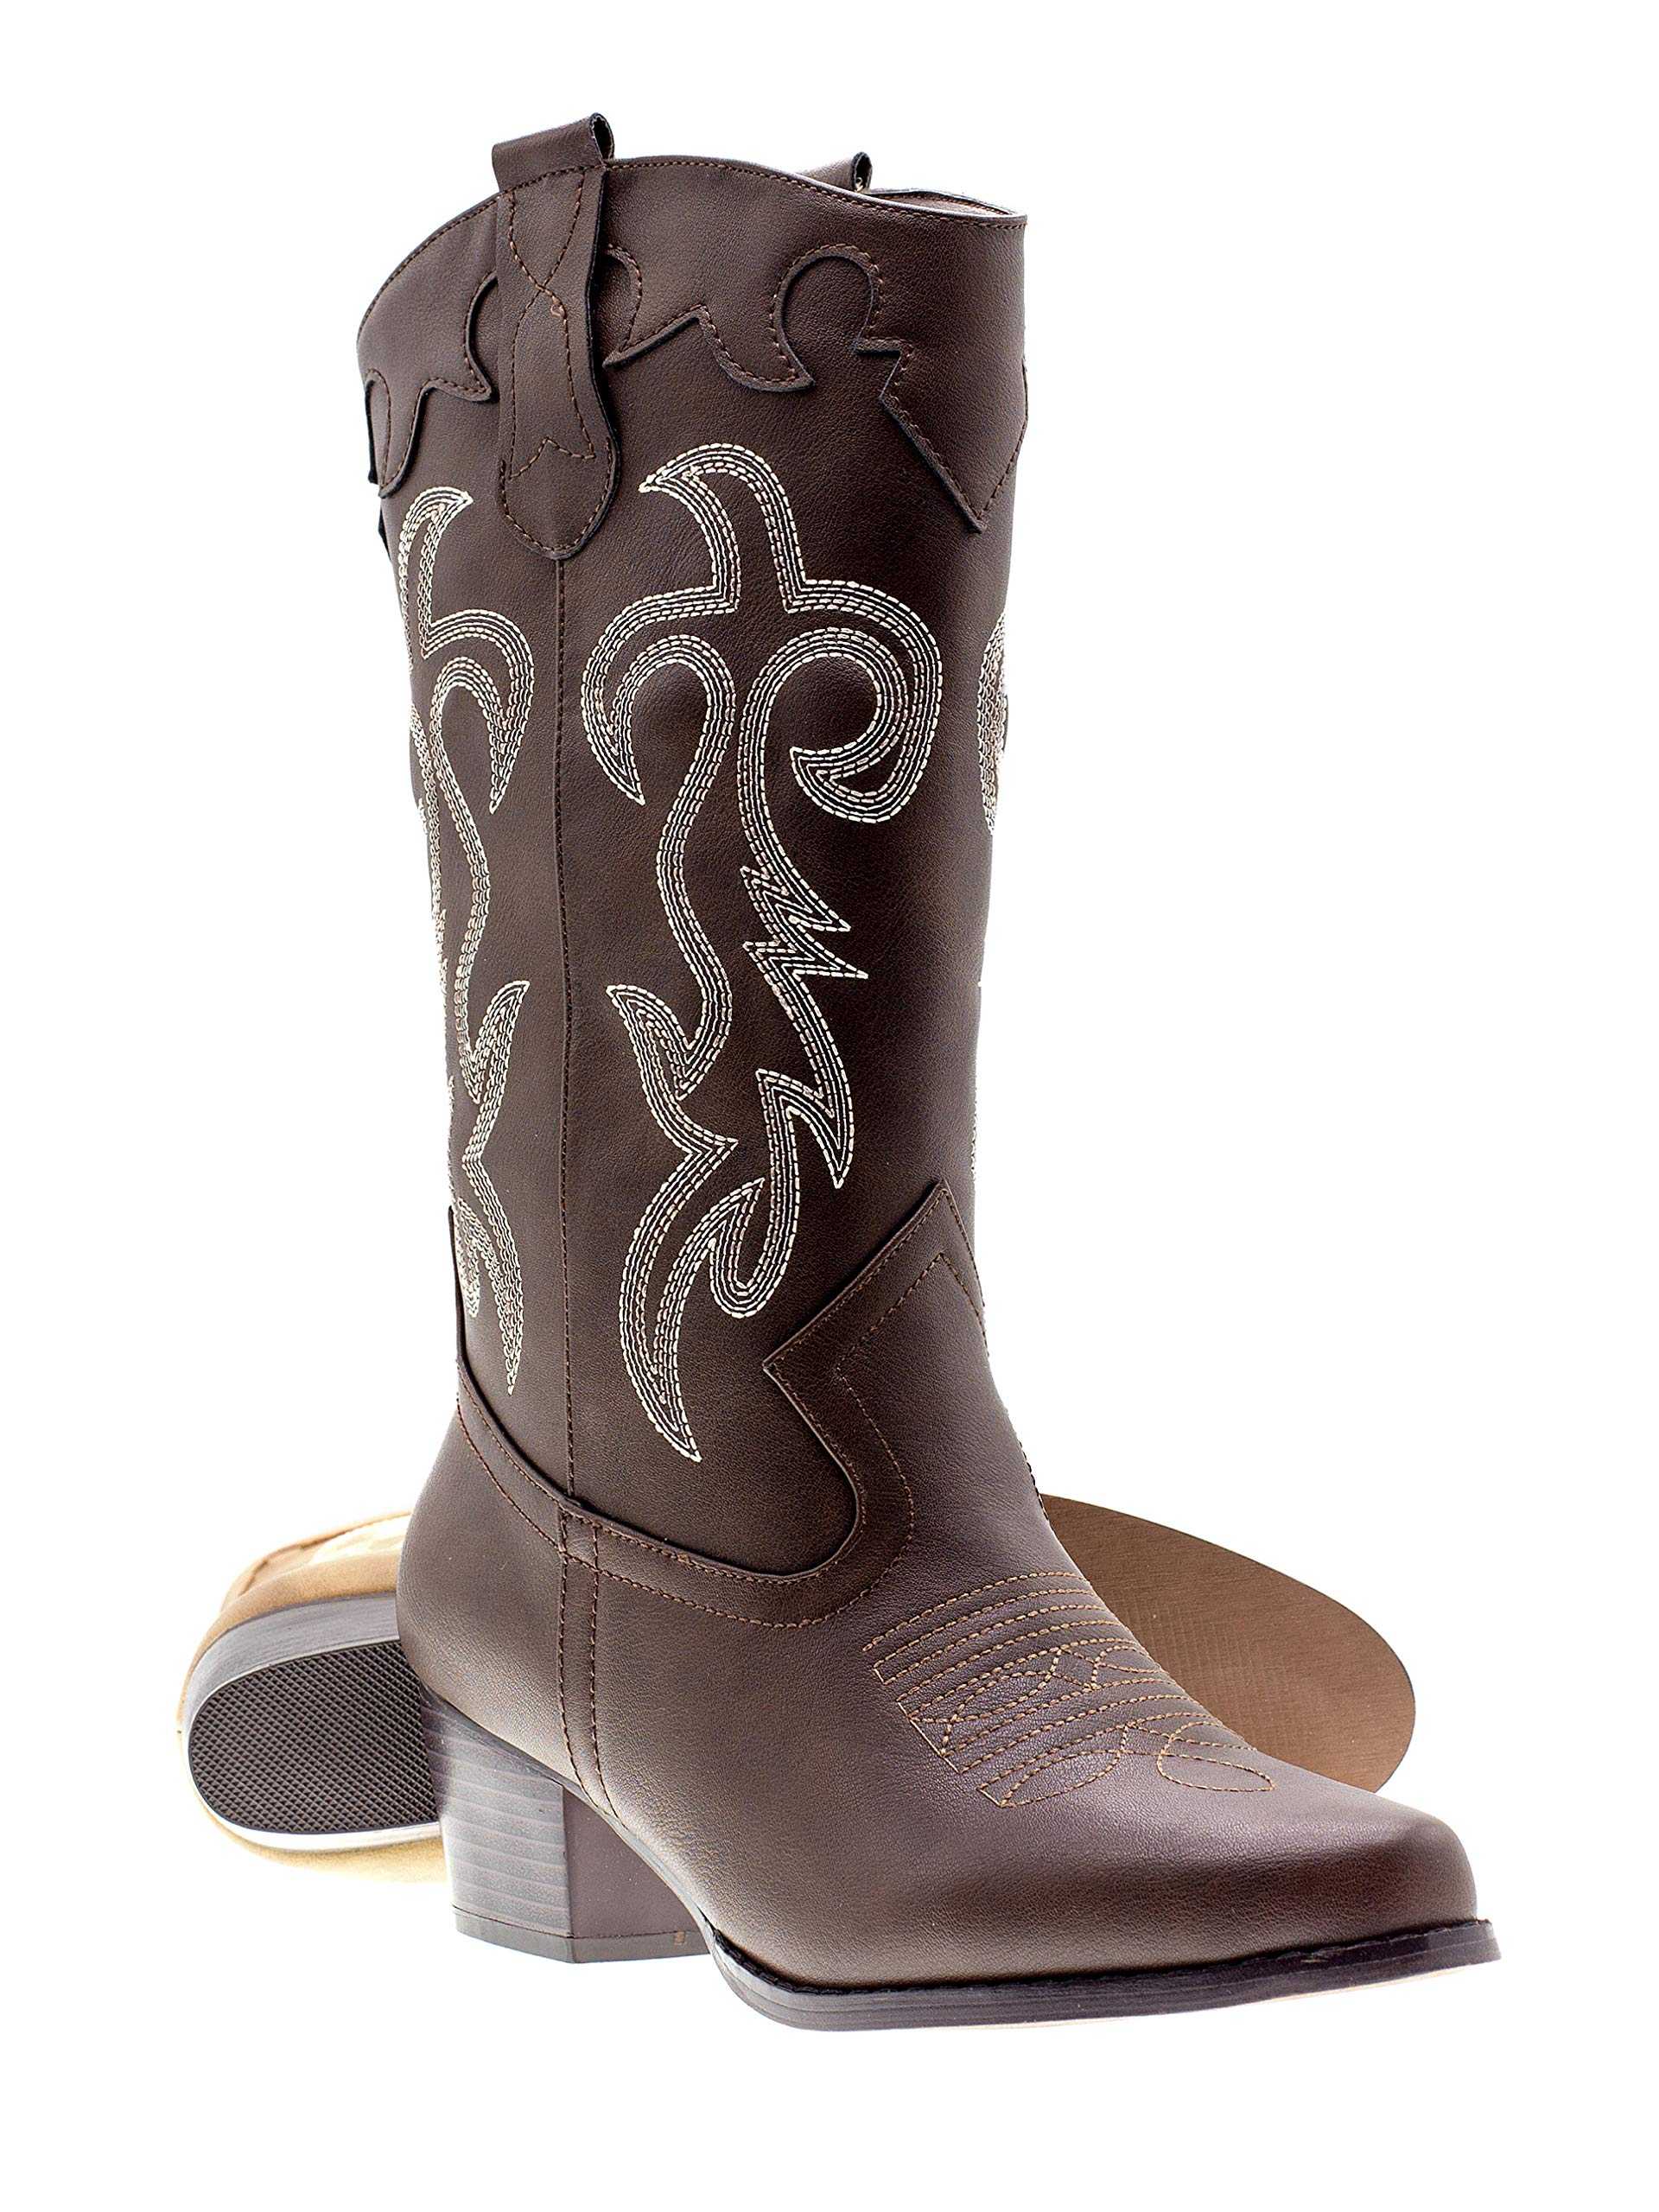 Canyon Trails Women's Classic Embroidered Pointed Toe Western Rodeo Cowboy Boots (8 (M) US Women's, Brown) by Canyon Trails